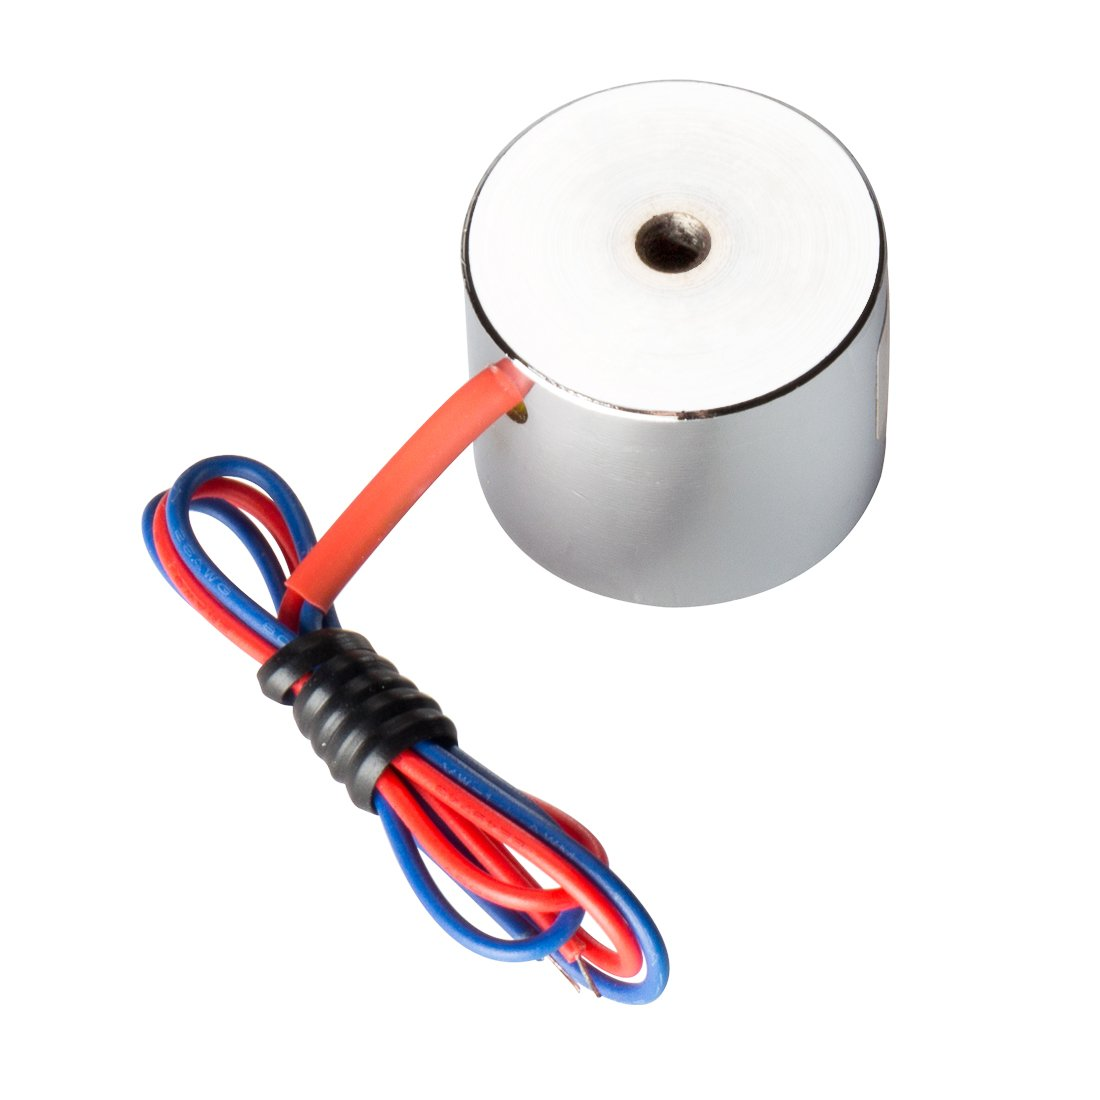 Aexit 5V 50N Lifting Accessories Electric Lifting Magnet Electromagnet Solenoid Lift Magnets Lift Holding